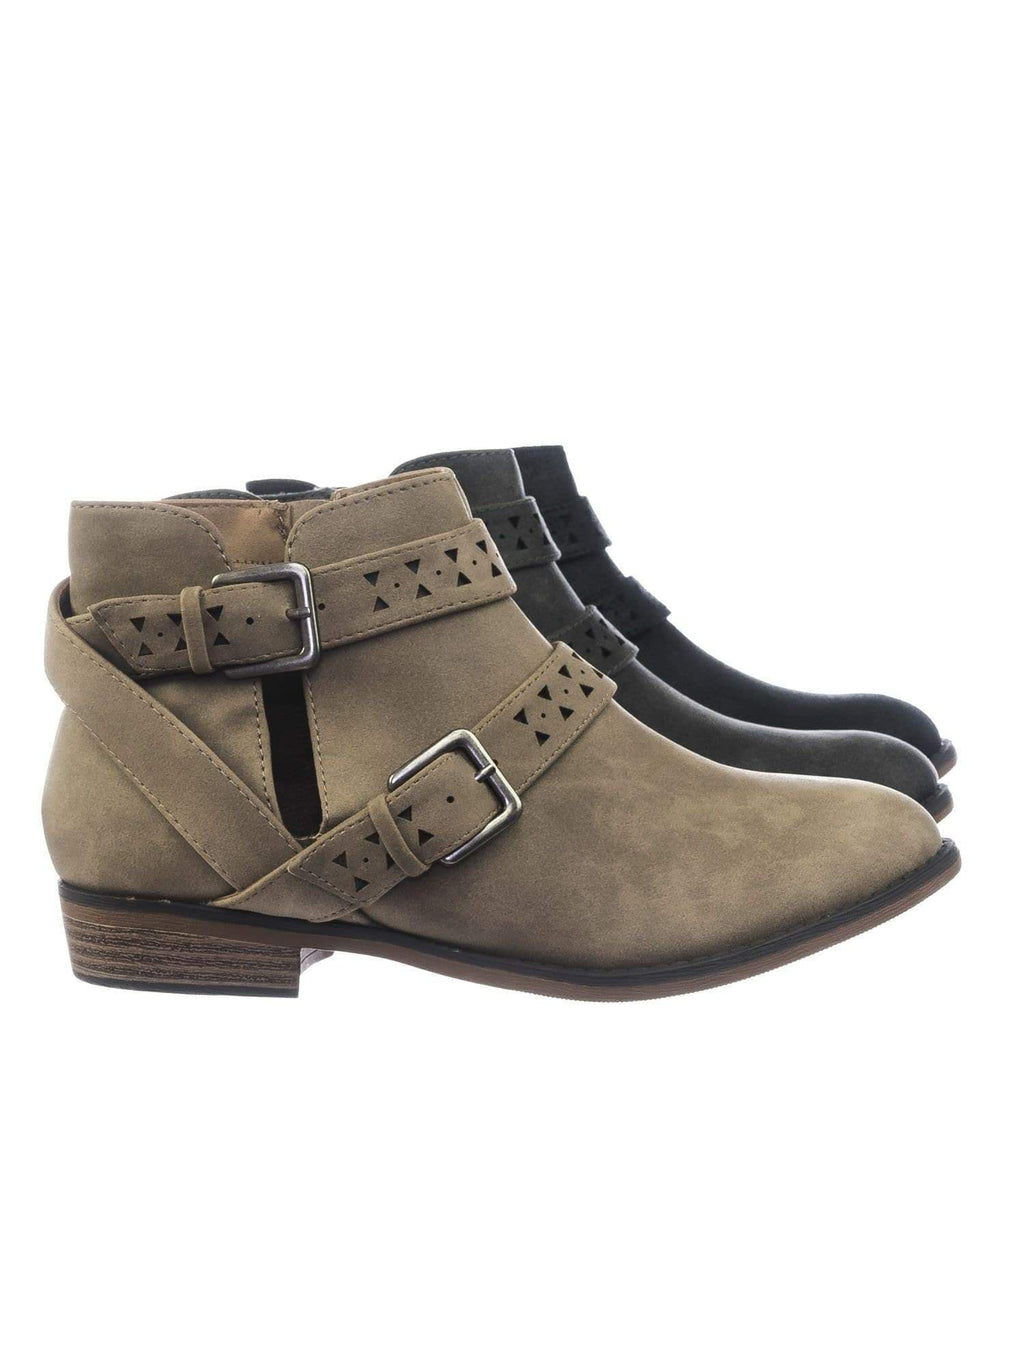 Bay LTpeDist Women Western Ankle Bootie w Belted Detail Open Side & Perforated Cutout